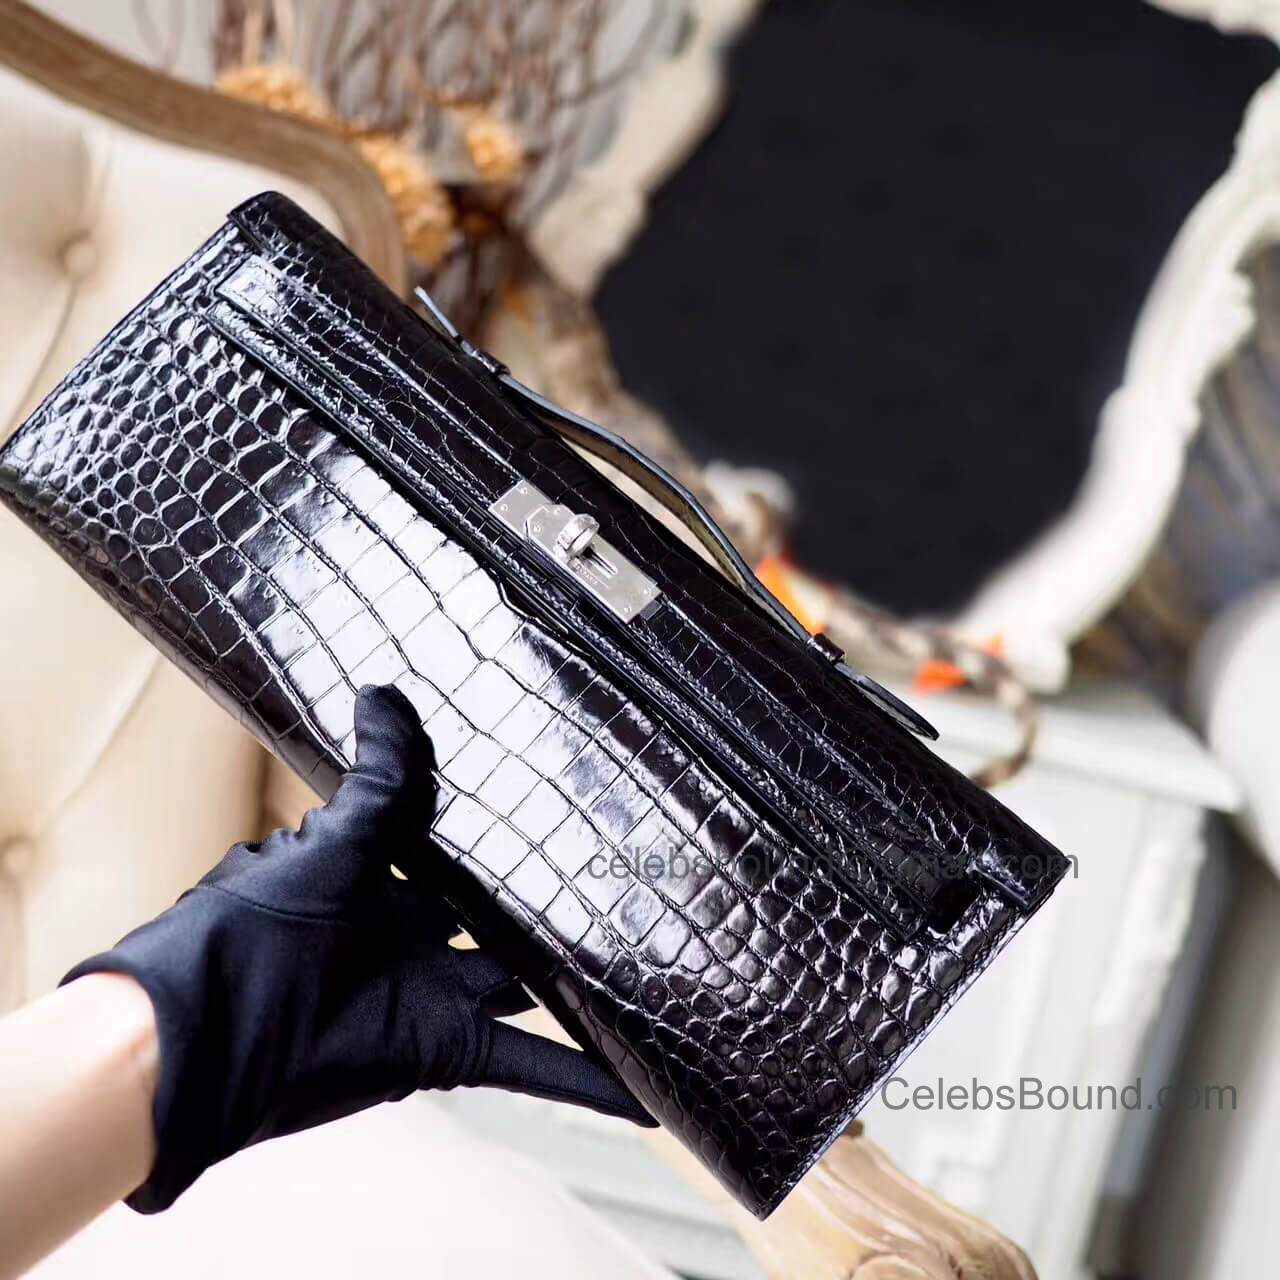 Replica Hermes Kelly Cut 31 Clutch in ck89 Noir Shiny Porosus Croc PHW